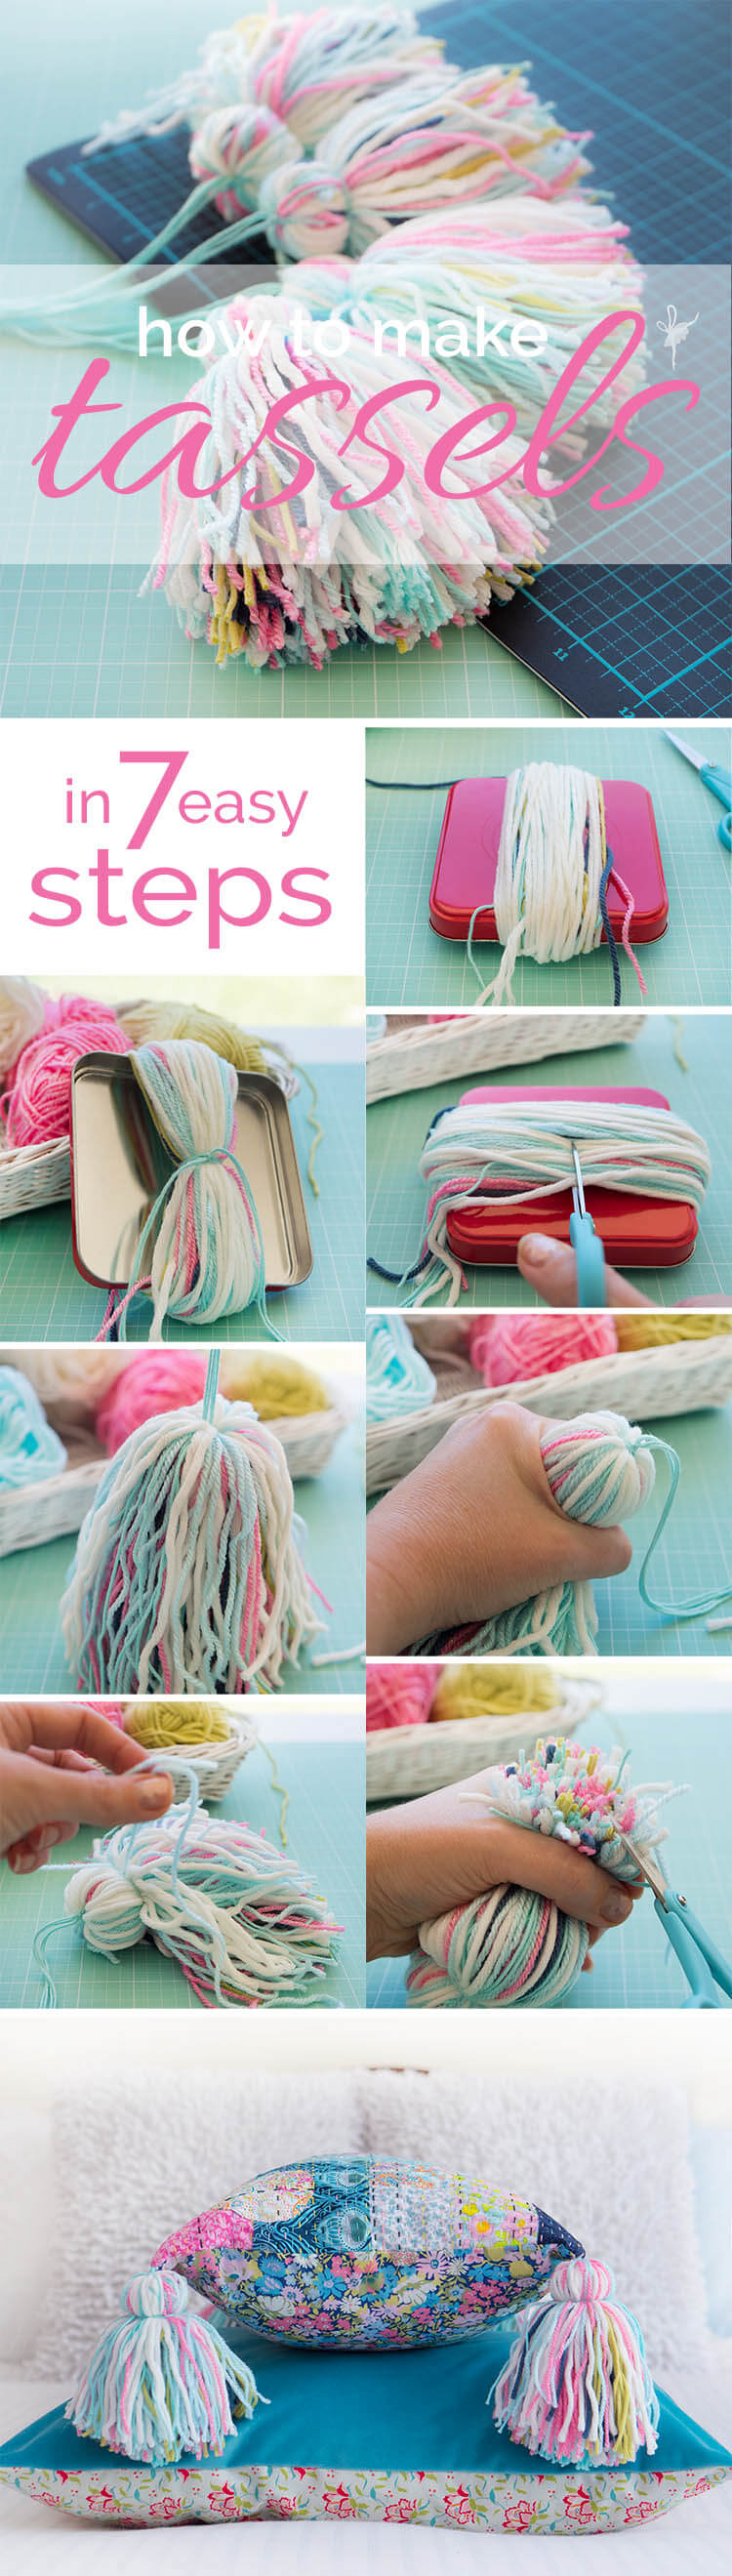 How to Make a Tassel in 7 Easy Steps